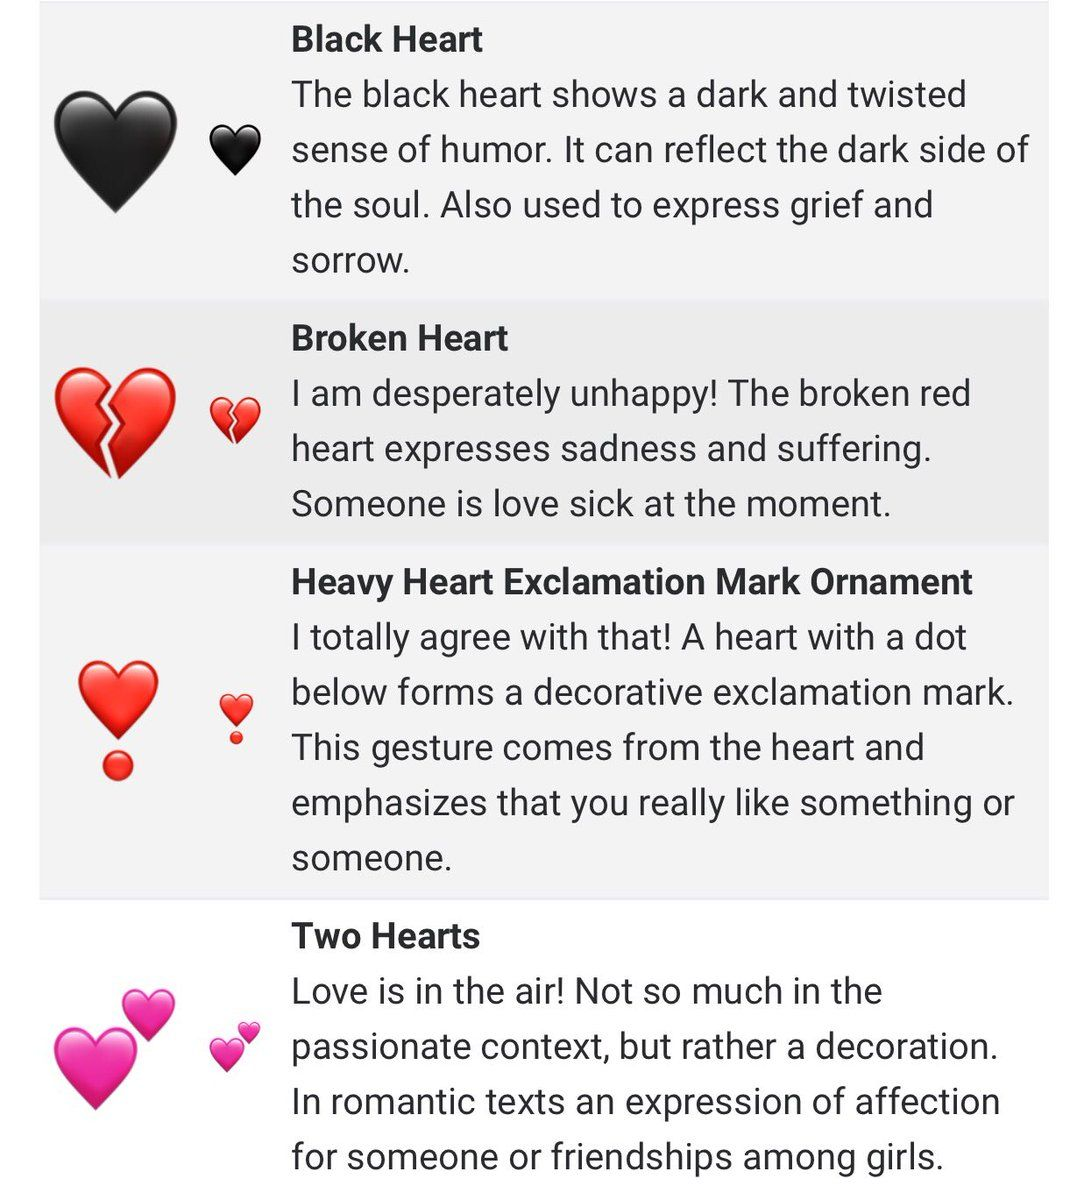 Pin By K On Heart Meanings In 2020 Love Sick Dark And Twisted Heart Emoji